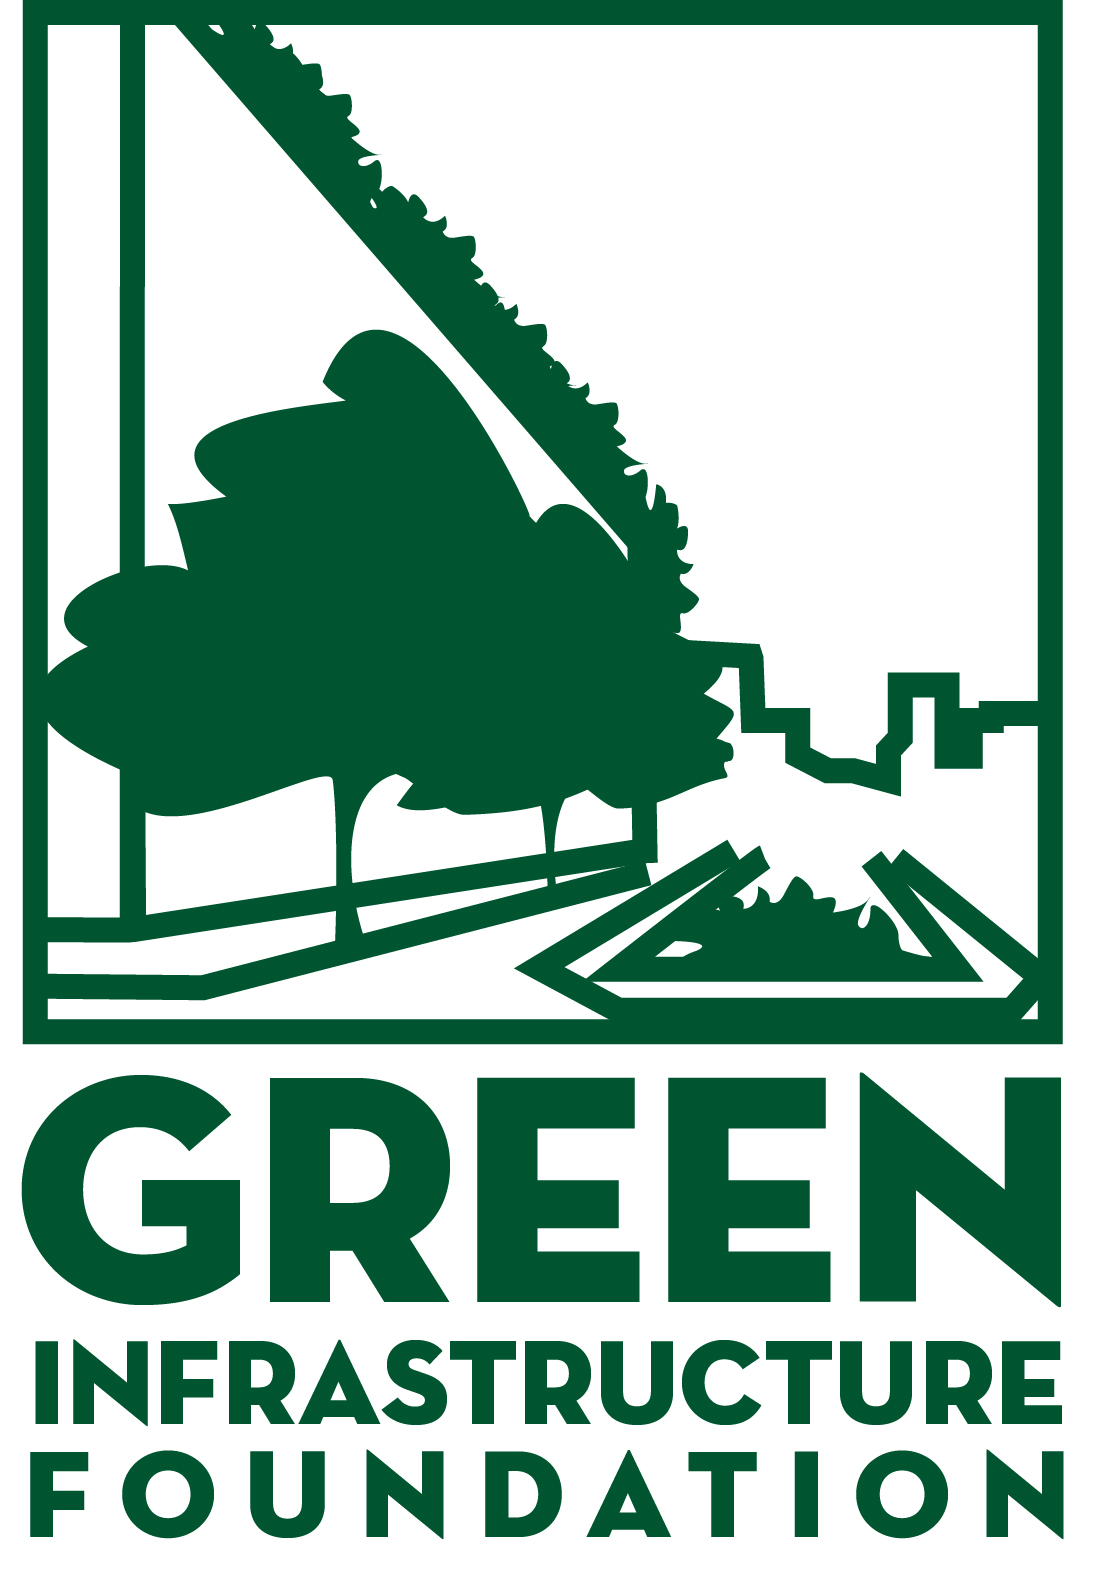 Green Infrastructure Foundation